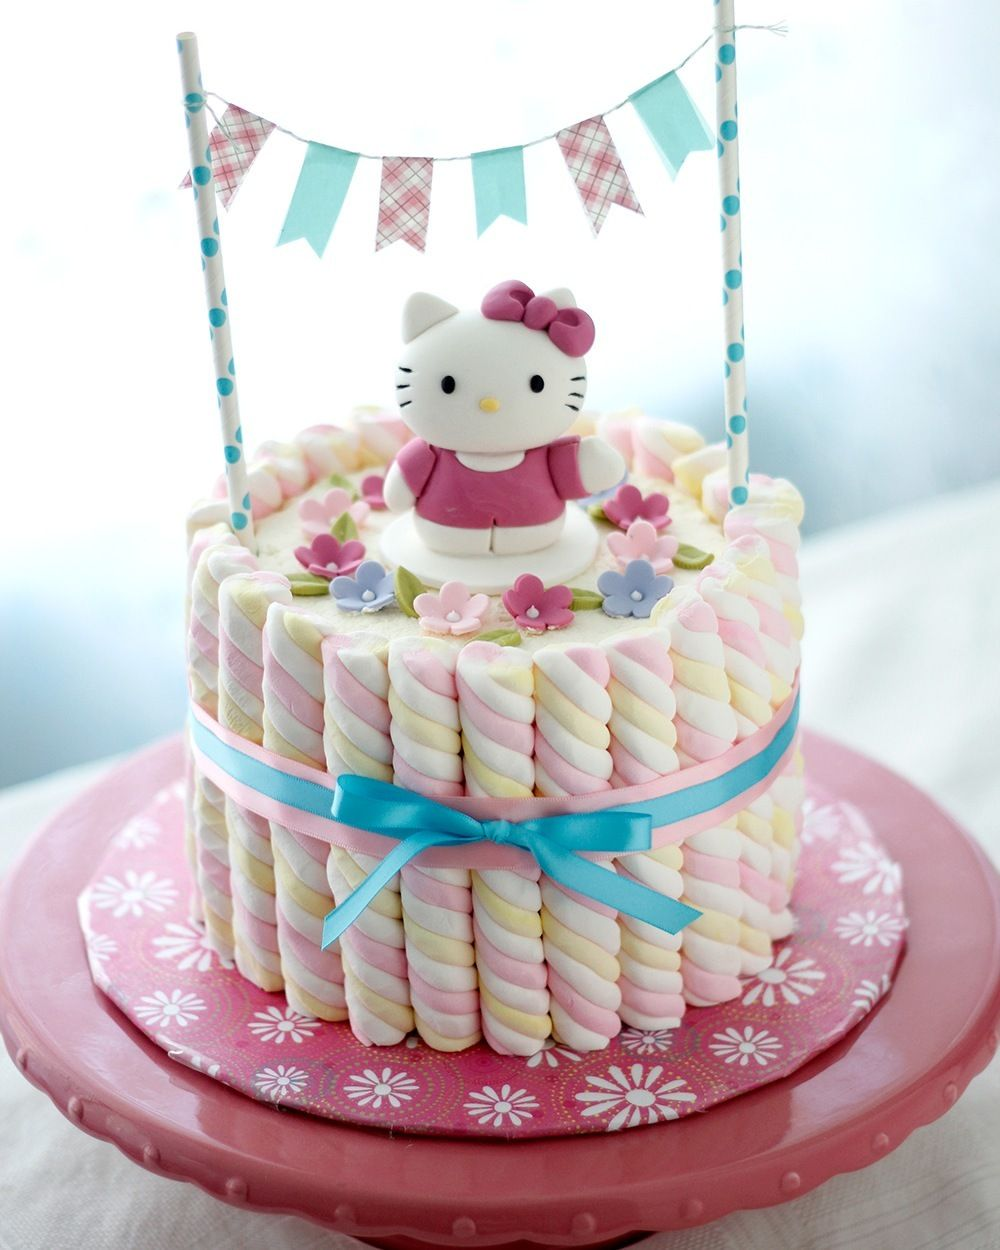 400 Likes 13 Comments Make Fabulous Cakes makefabulouscakes on